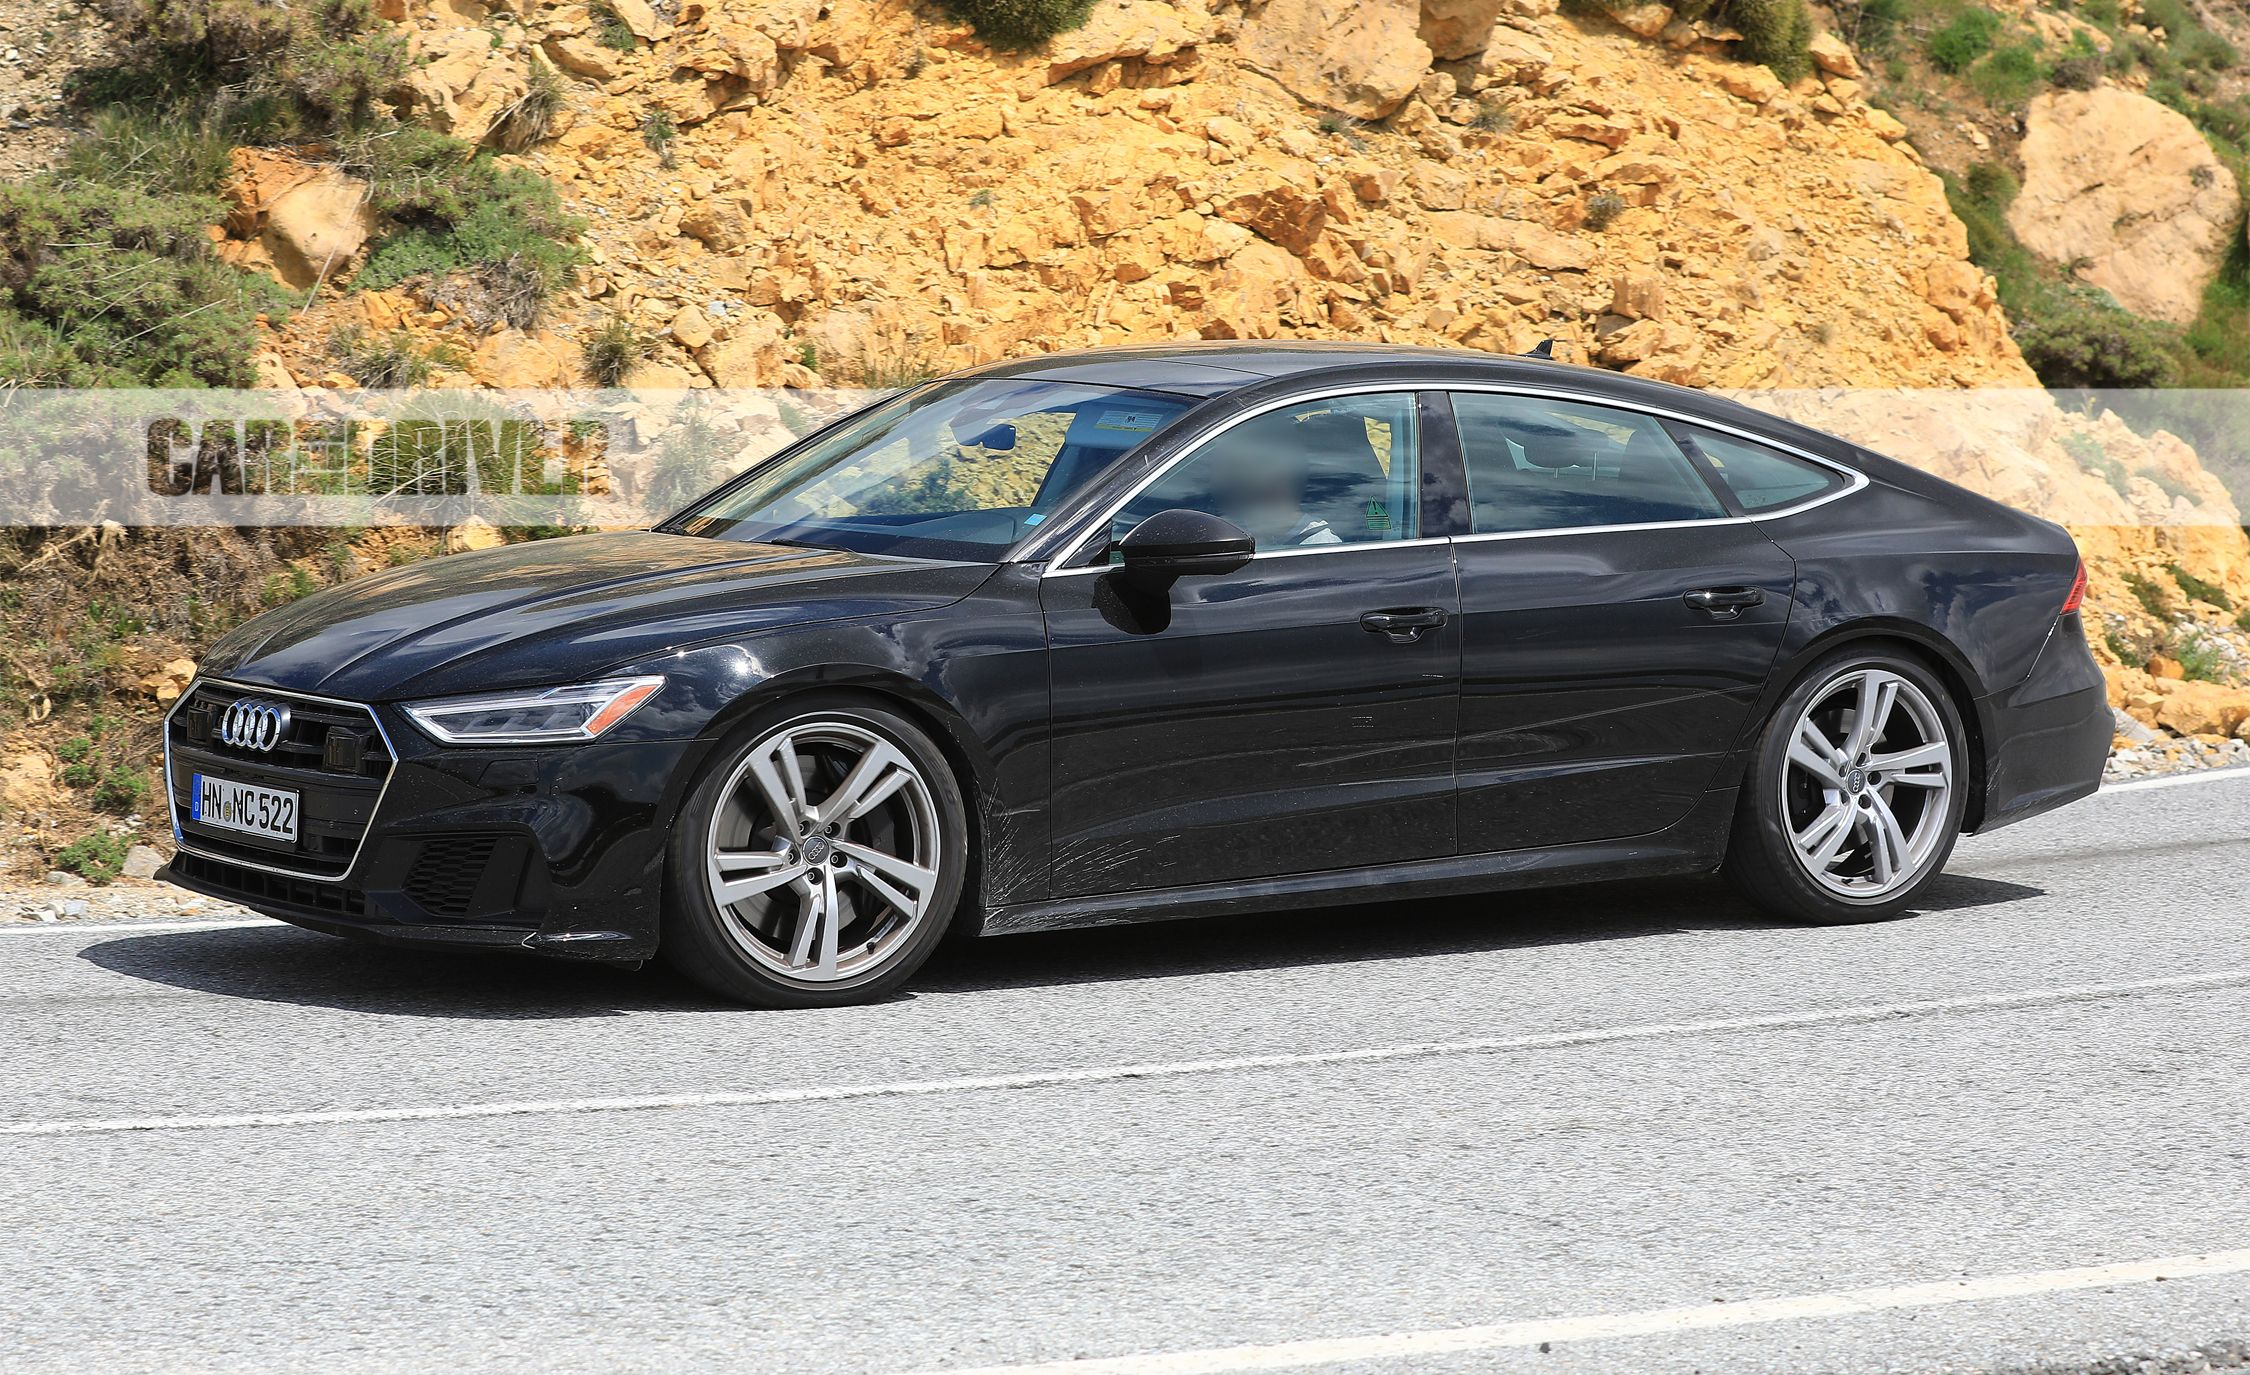 2020 Audi S7 Spied Testing News Car And Driver